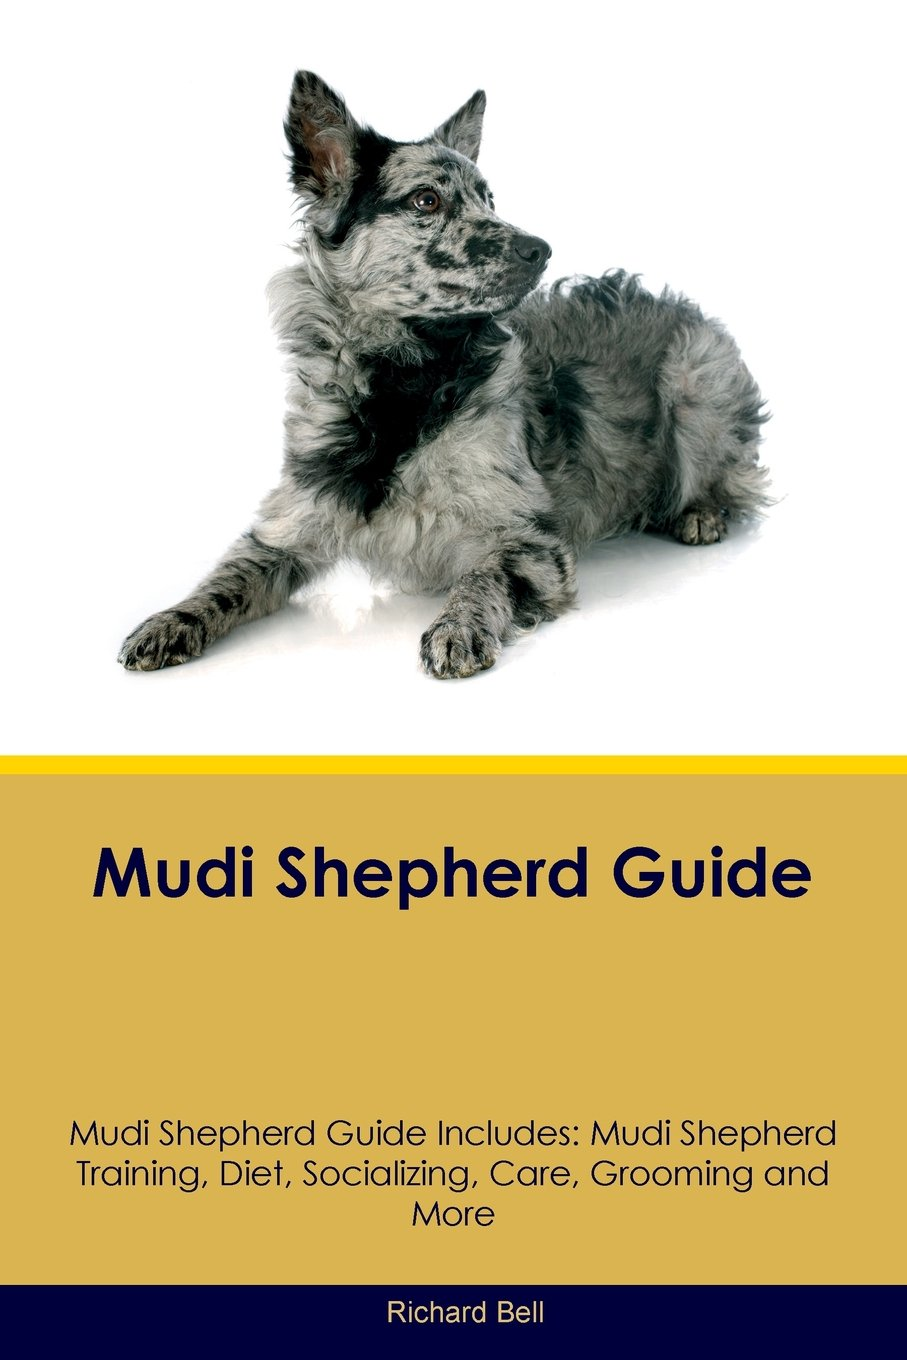 The Complete Guide to Mudi